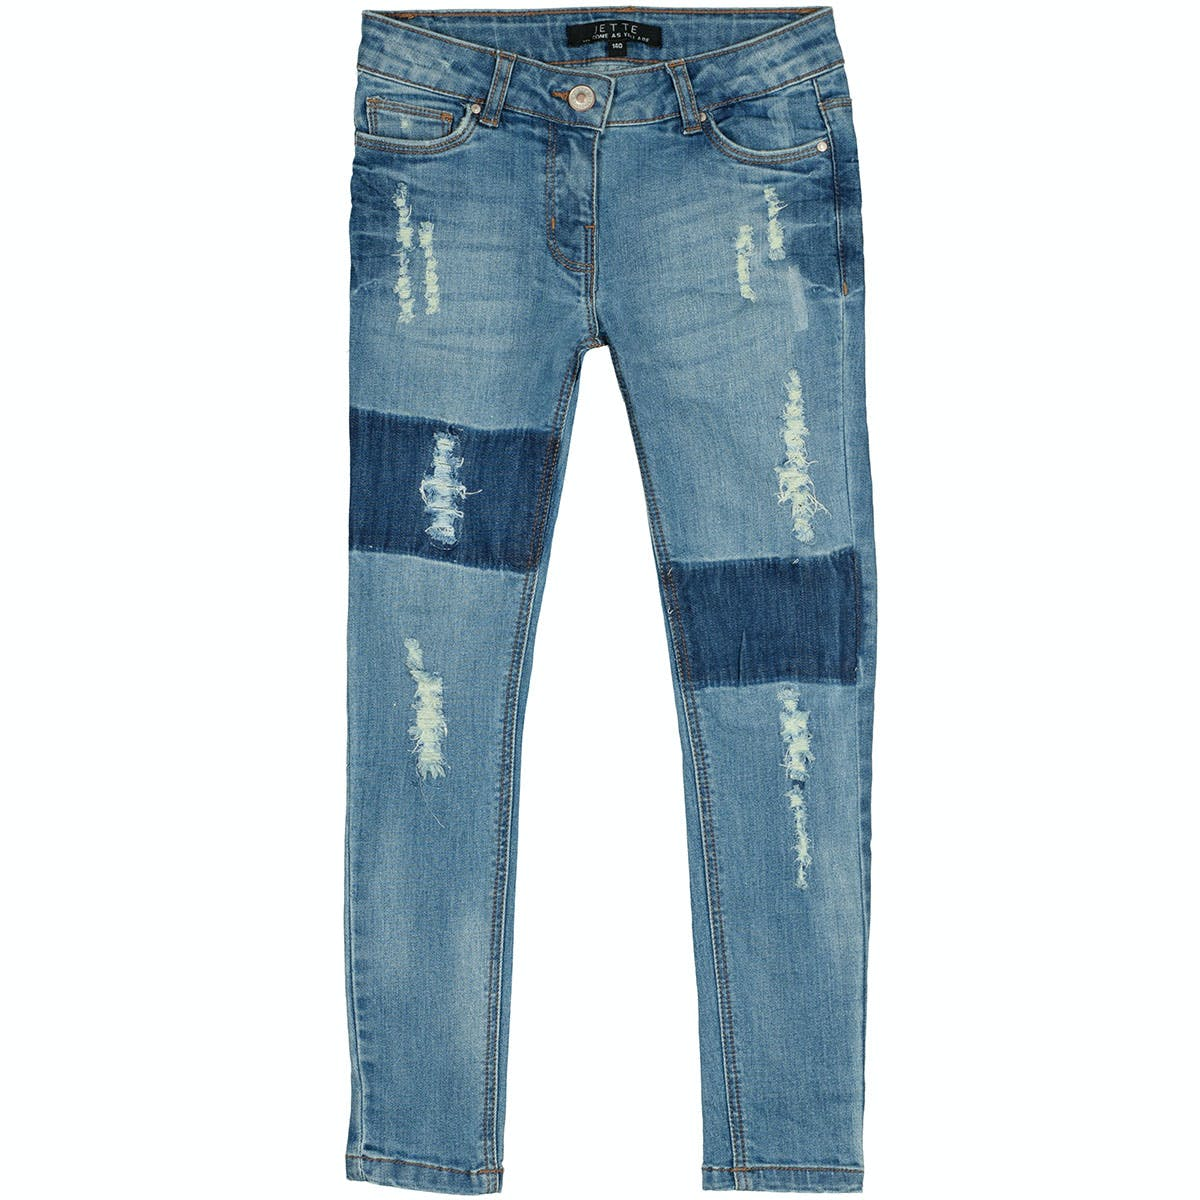 231004595-jeans-blue__jeans__all